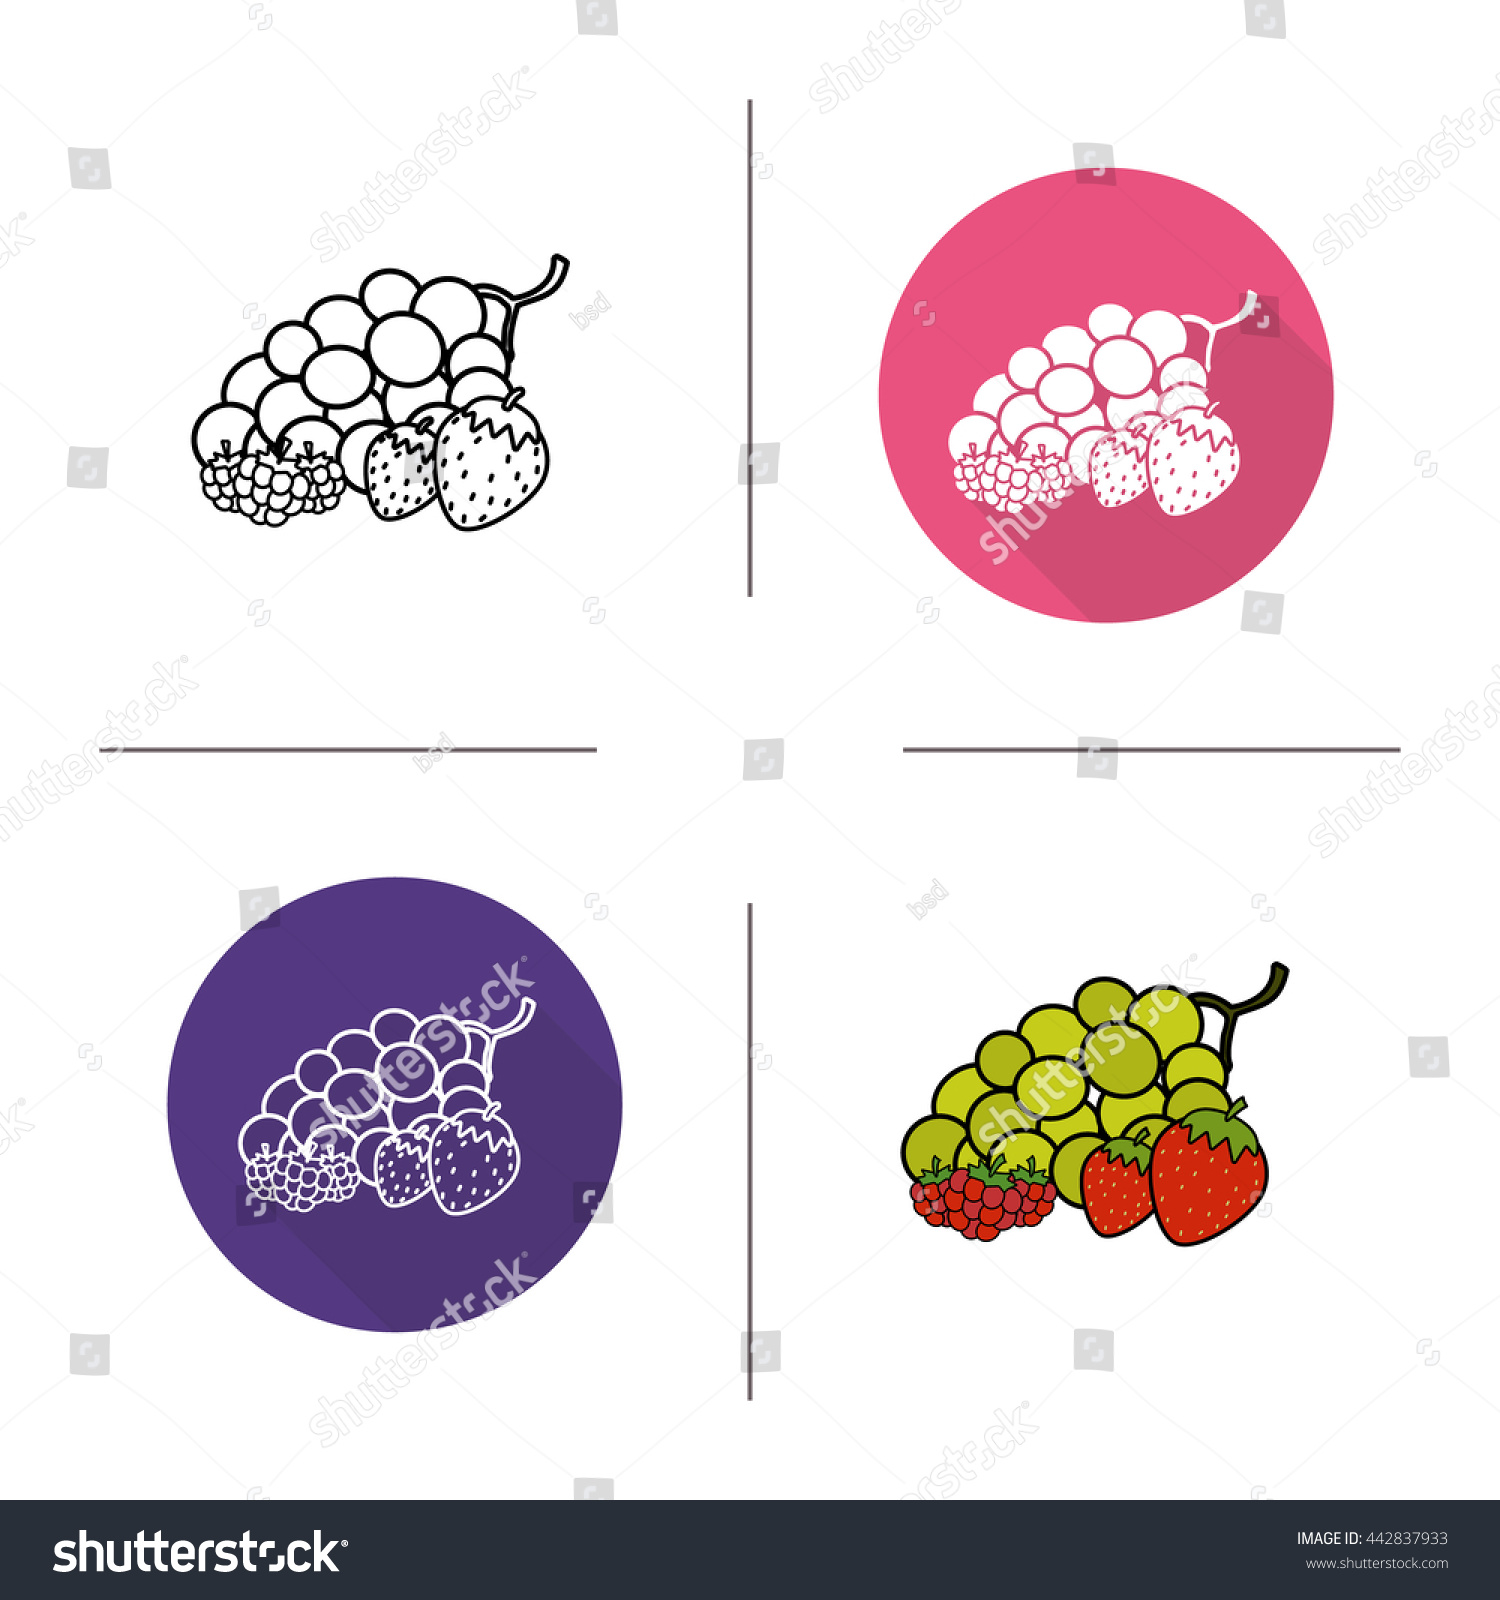 Berries Flat Design Linear Color Icons Stock Illustration 442837933 Strawberry Plant Diagram And Set Grape Raspberry In